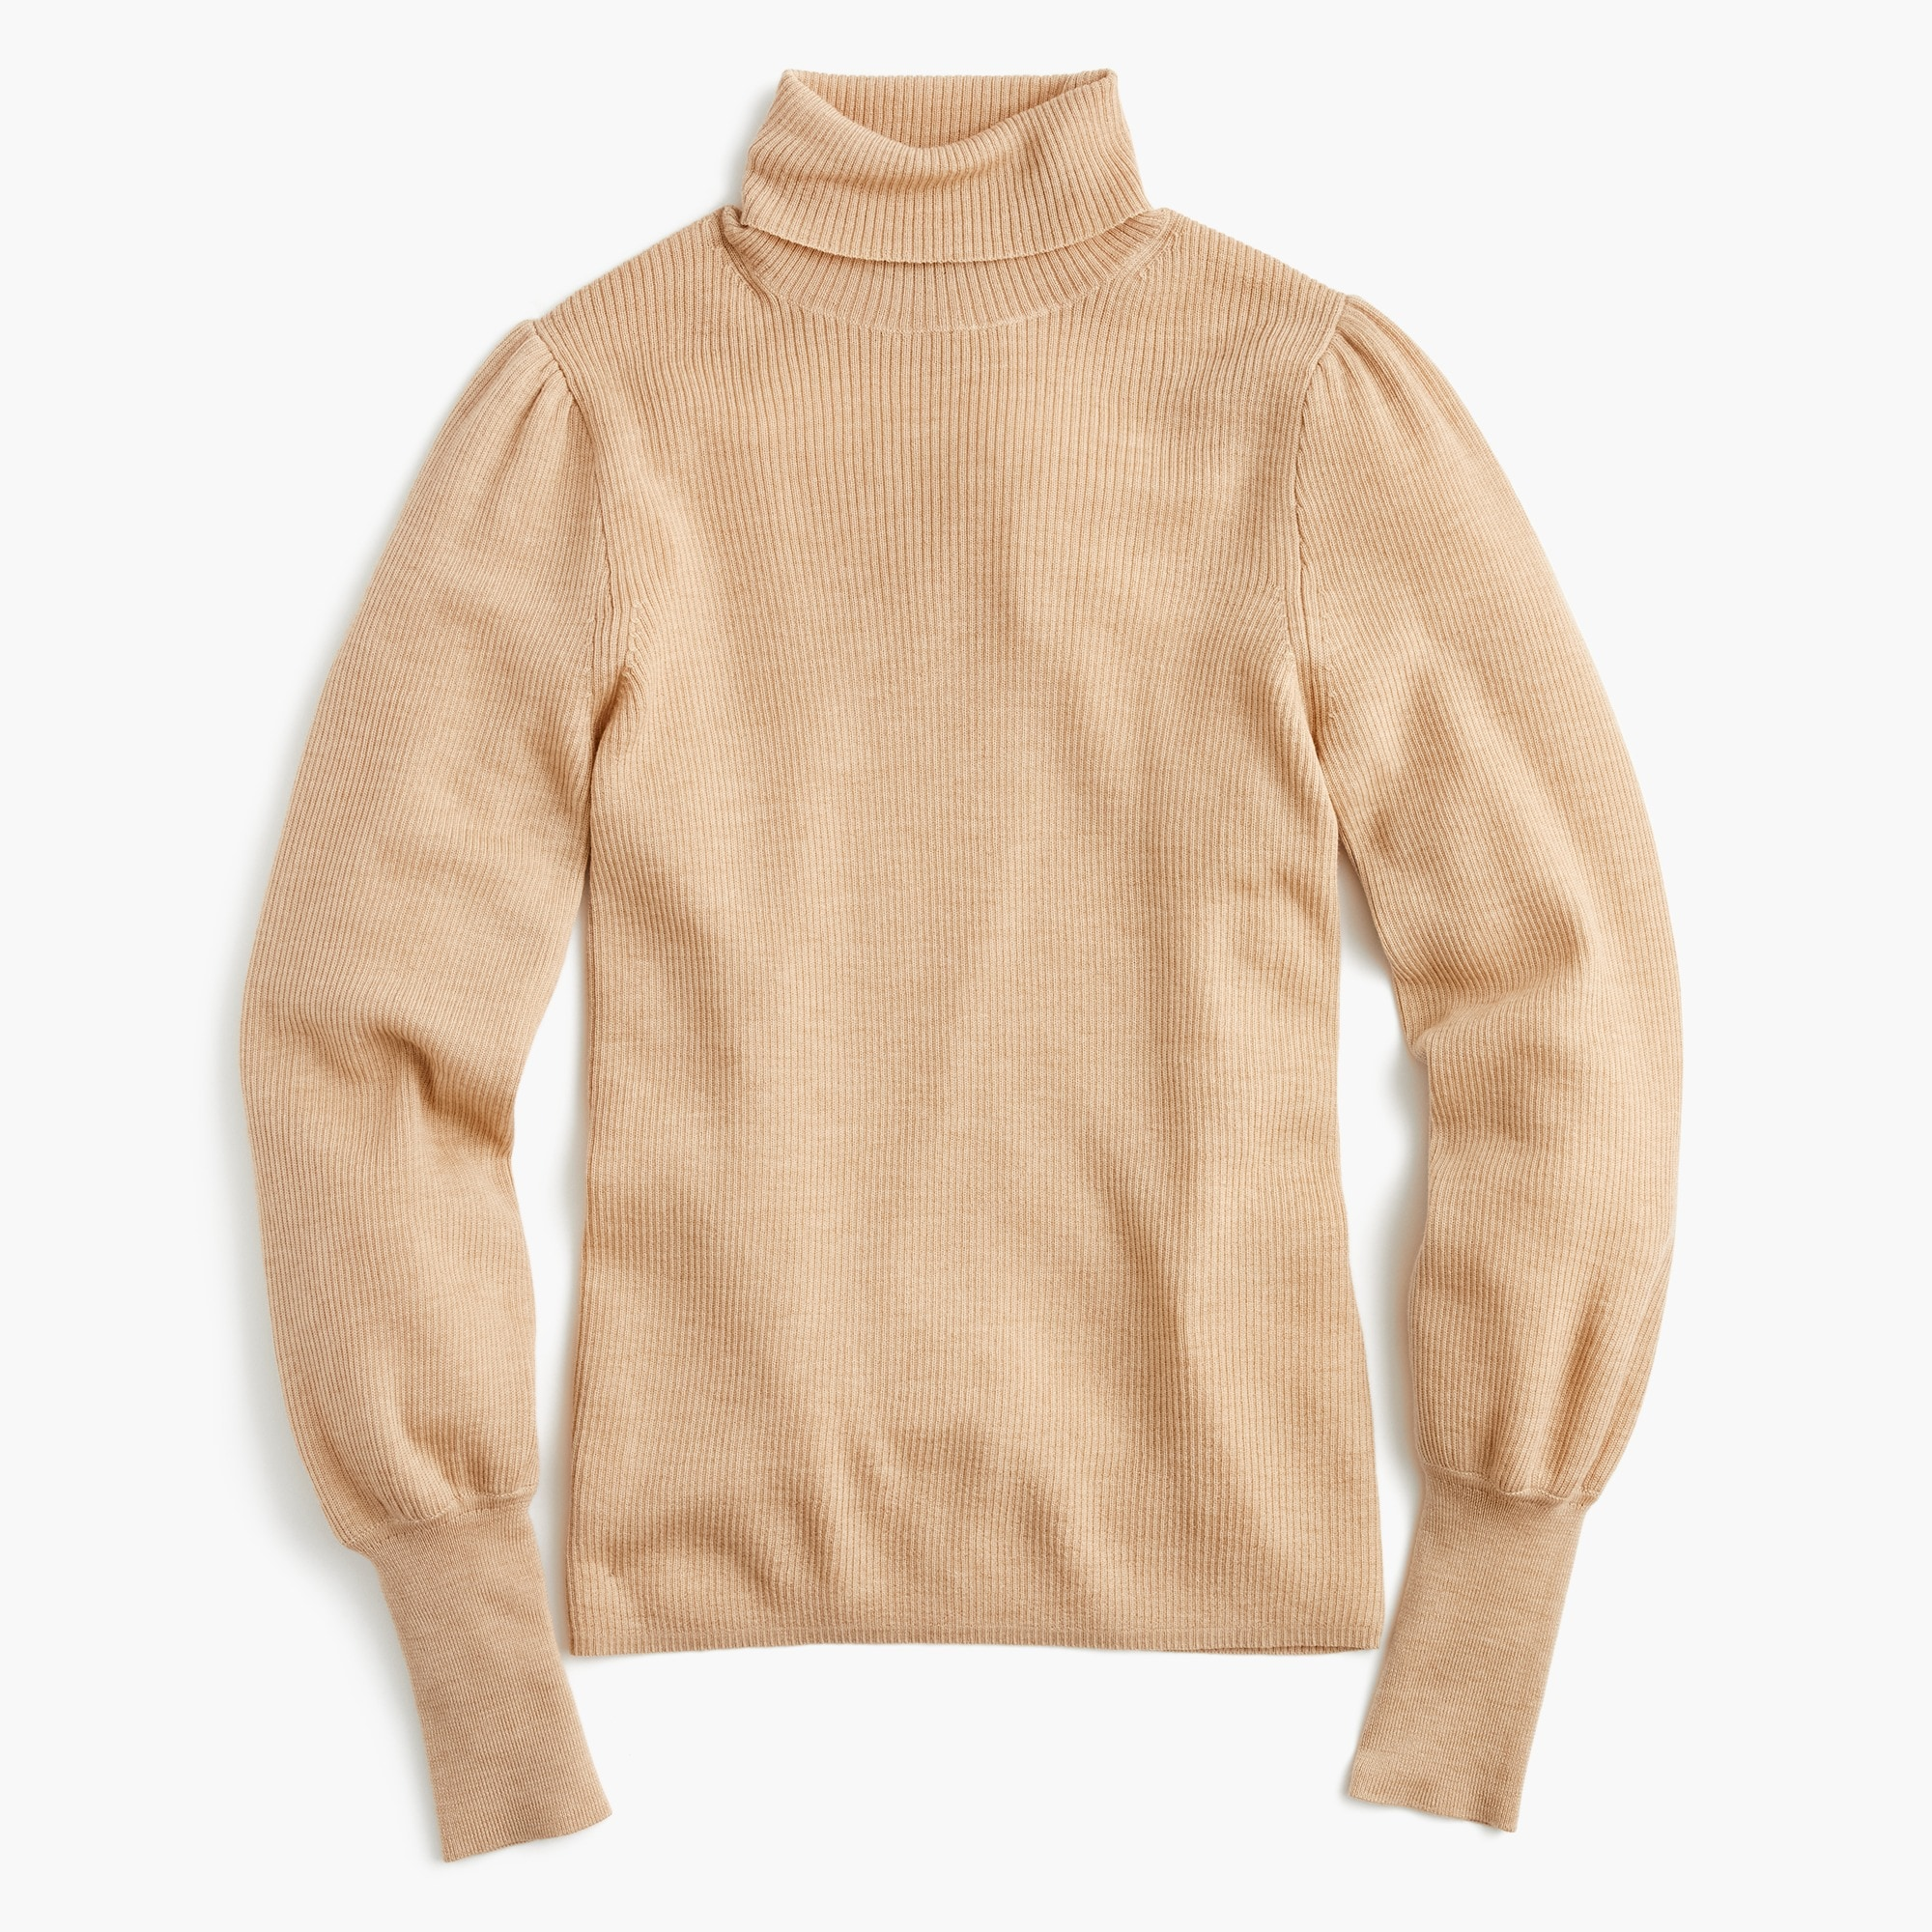 Image 1 for Balloon-sleeve turtleneck sweater